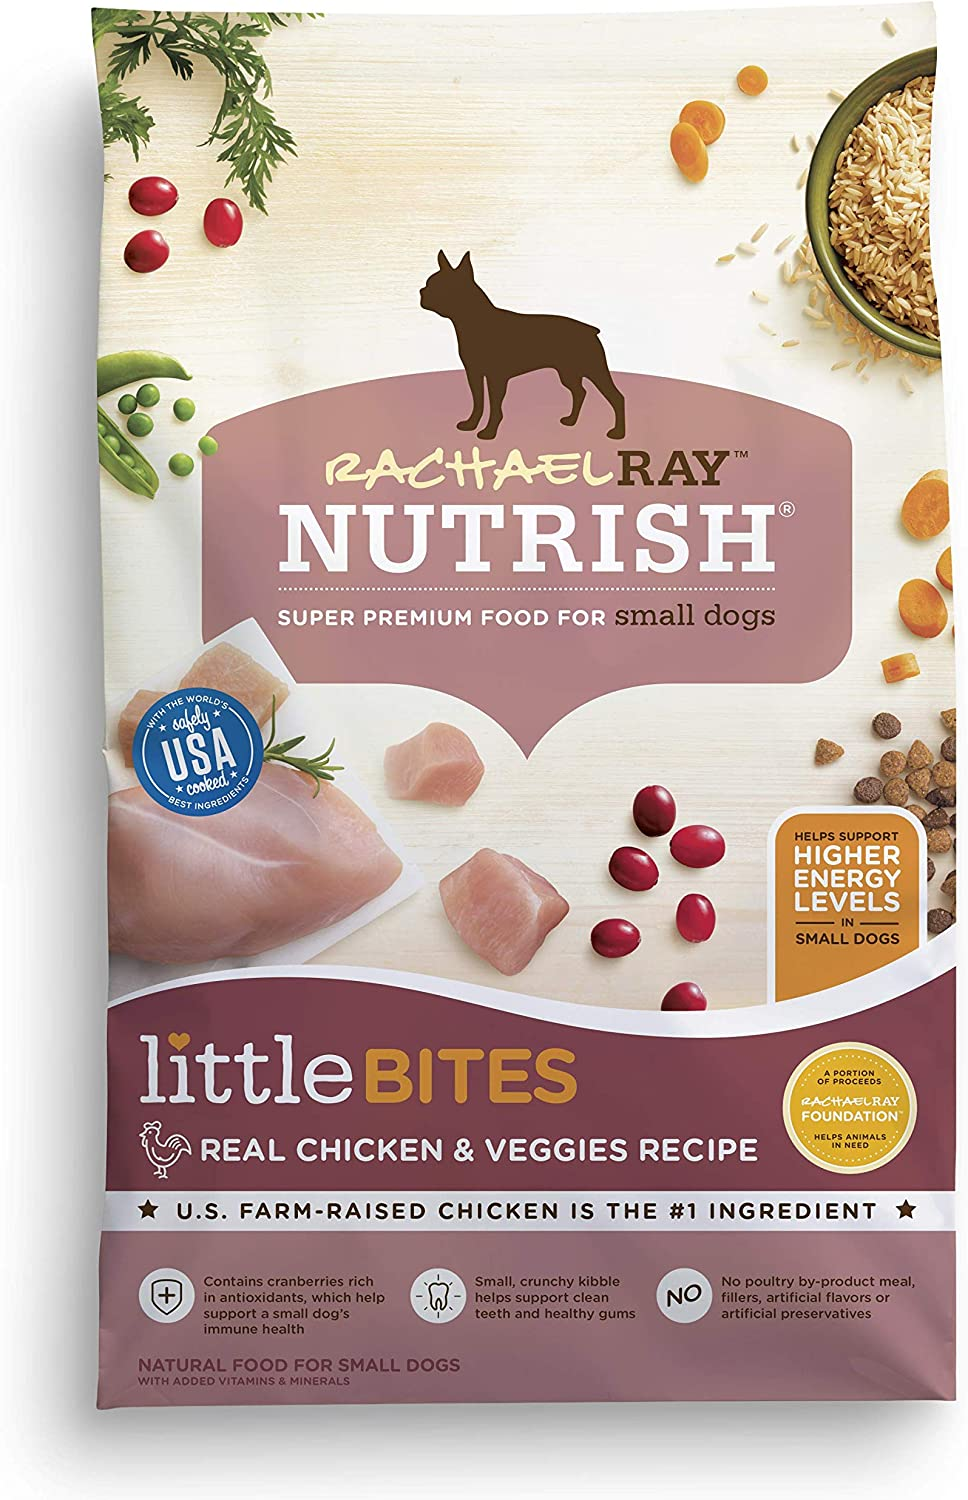 Rachael Ray Nutrish Little Bites Dry Dog Food, Chicken & Veggies Recipe for Small Breeds